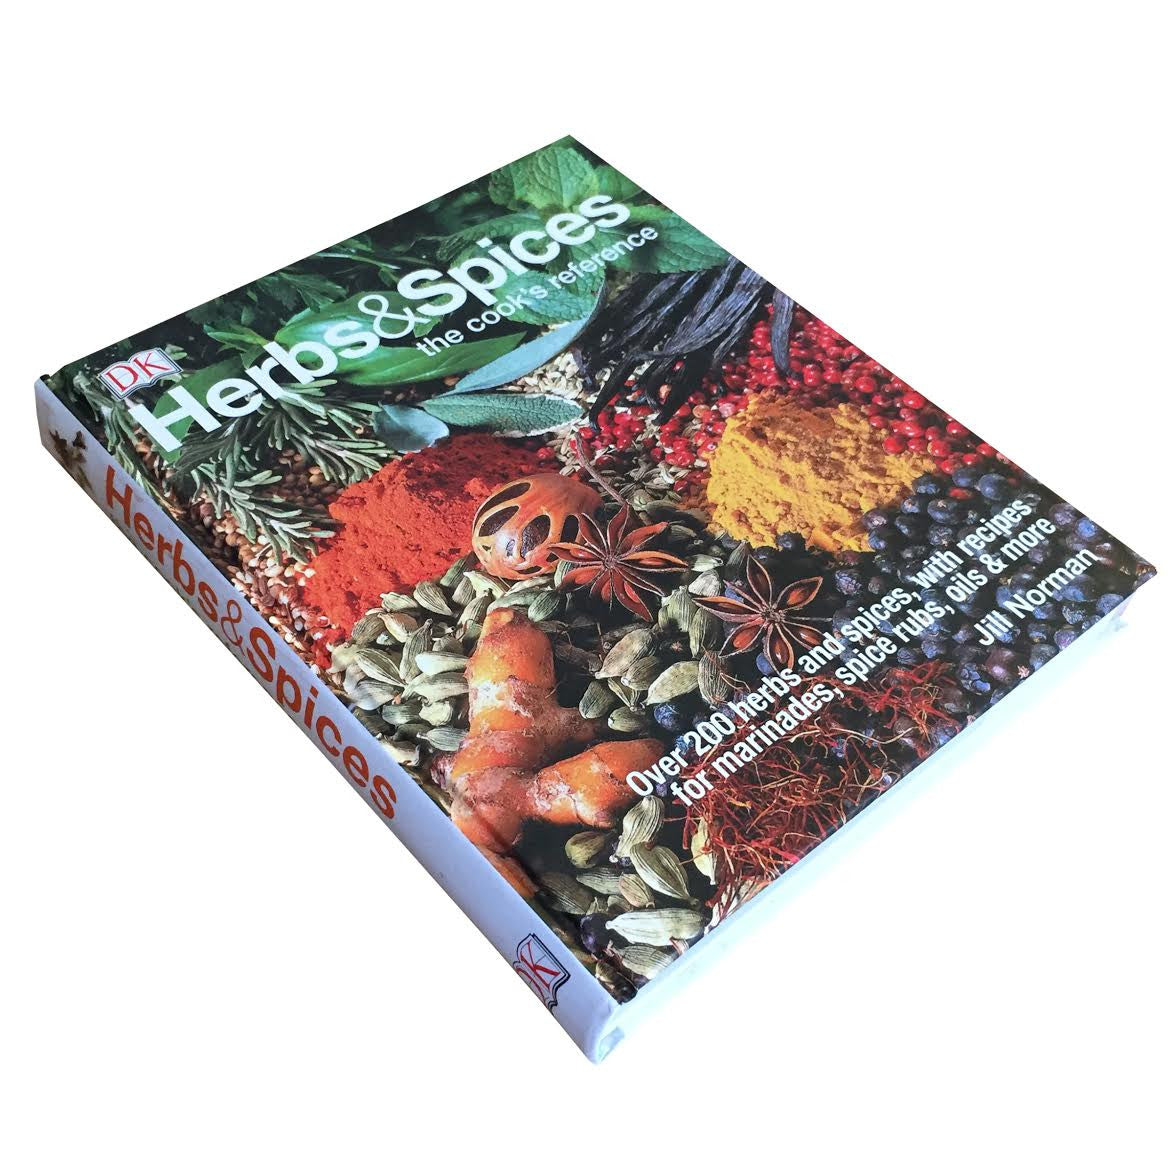 Herbs and Spices Book By Jill Norman